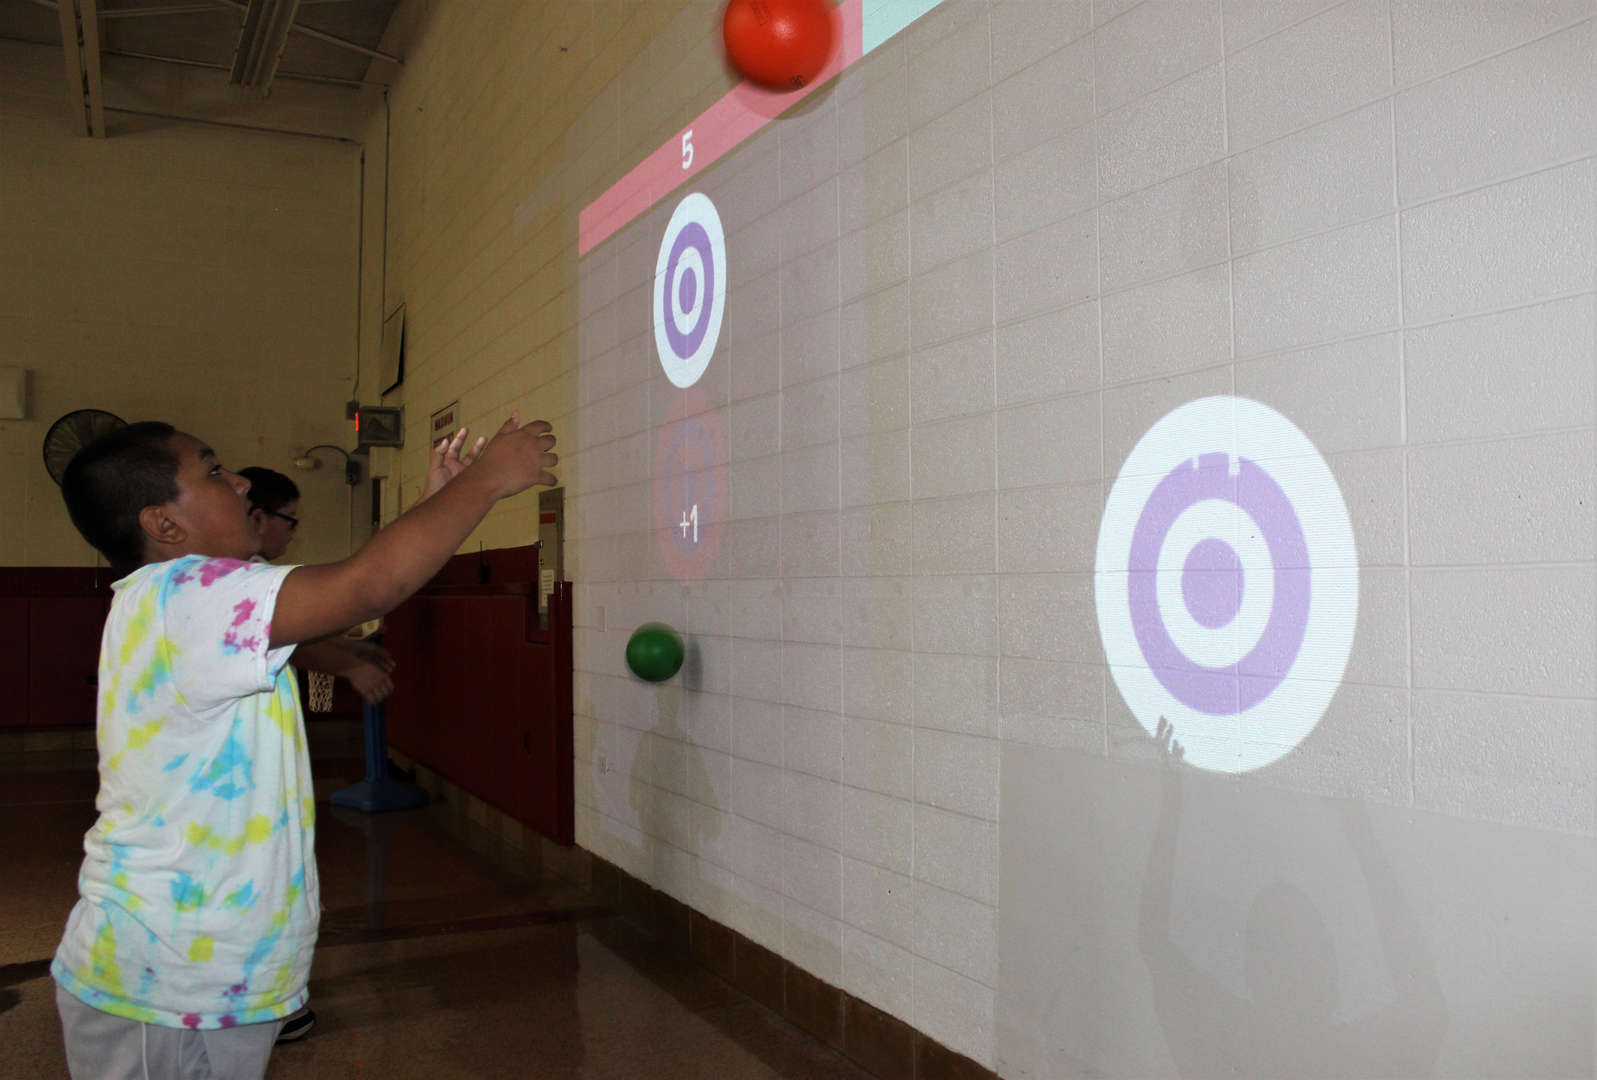 A male student plays a Lu interactive playground game at Tappan Hill School.